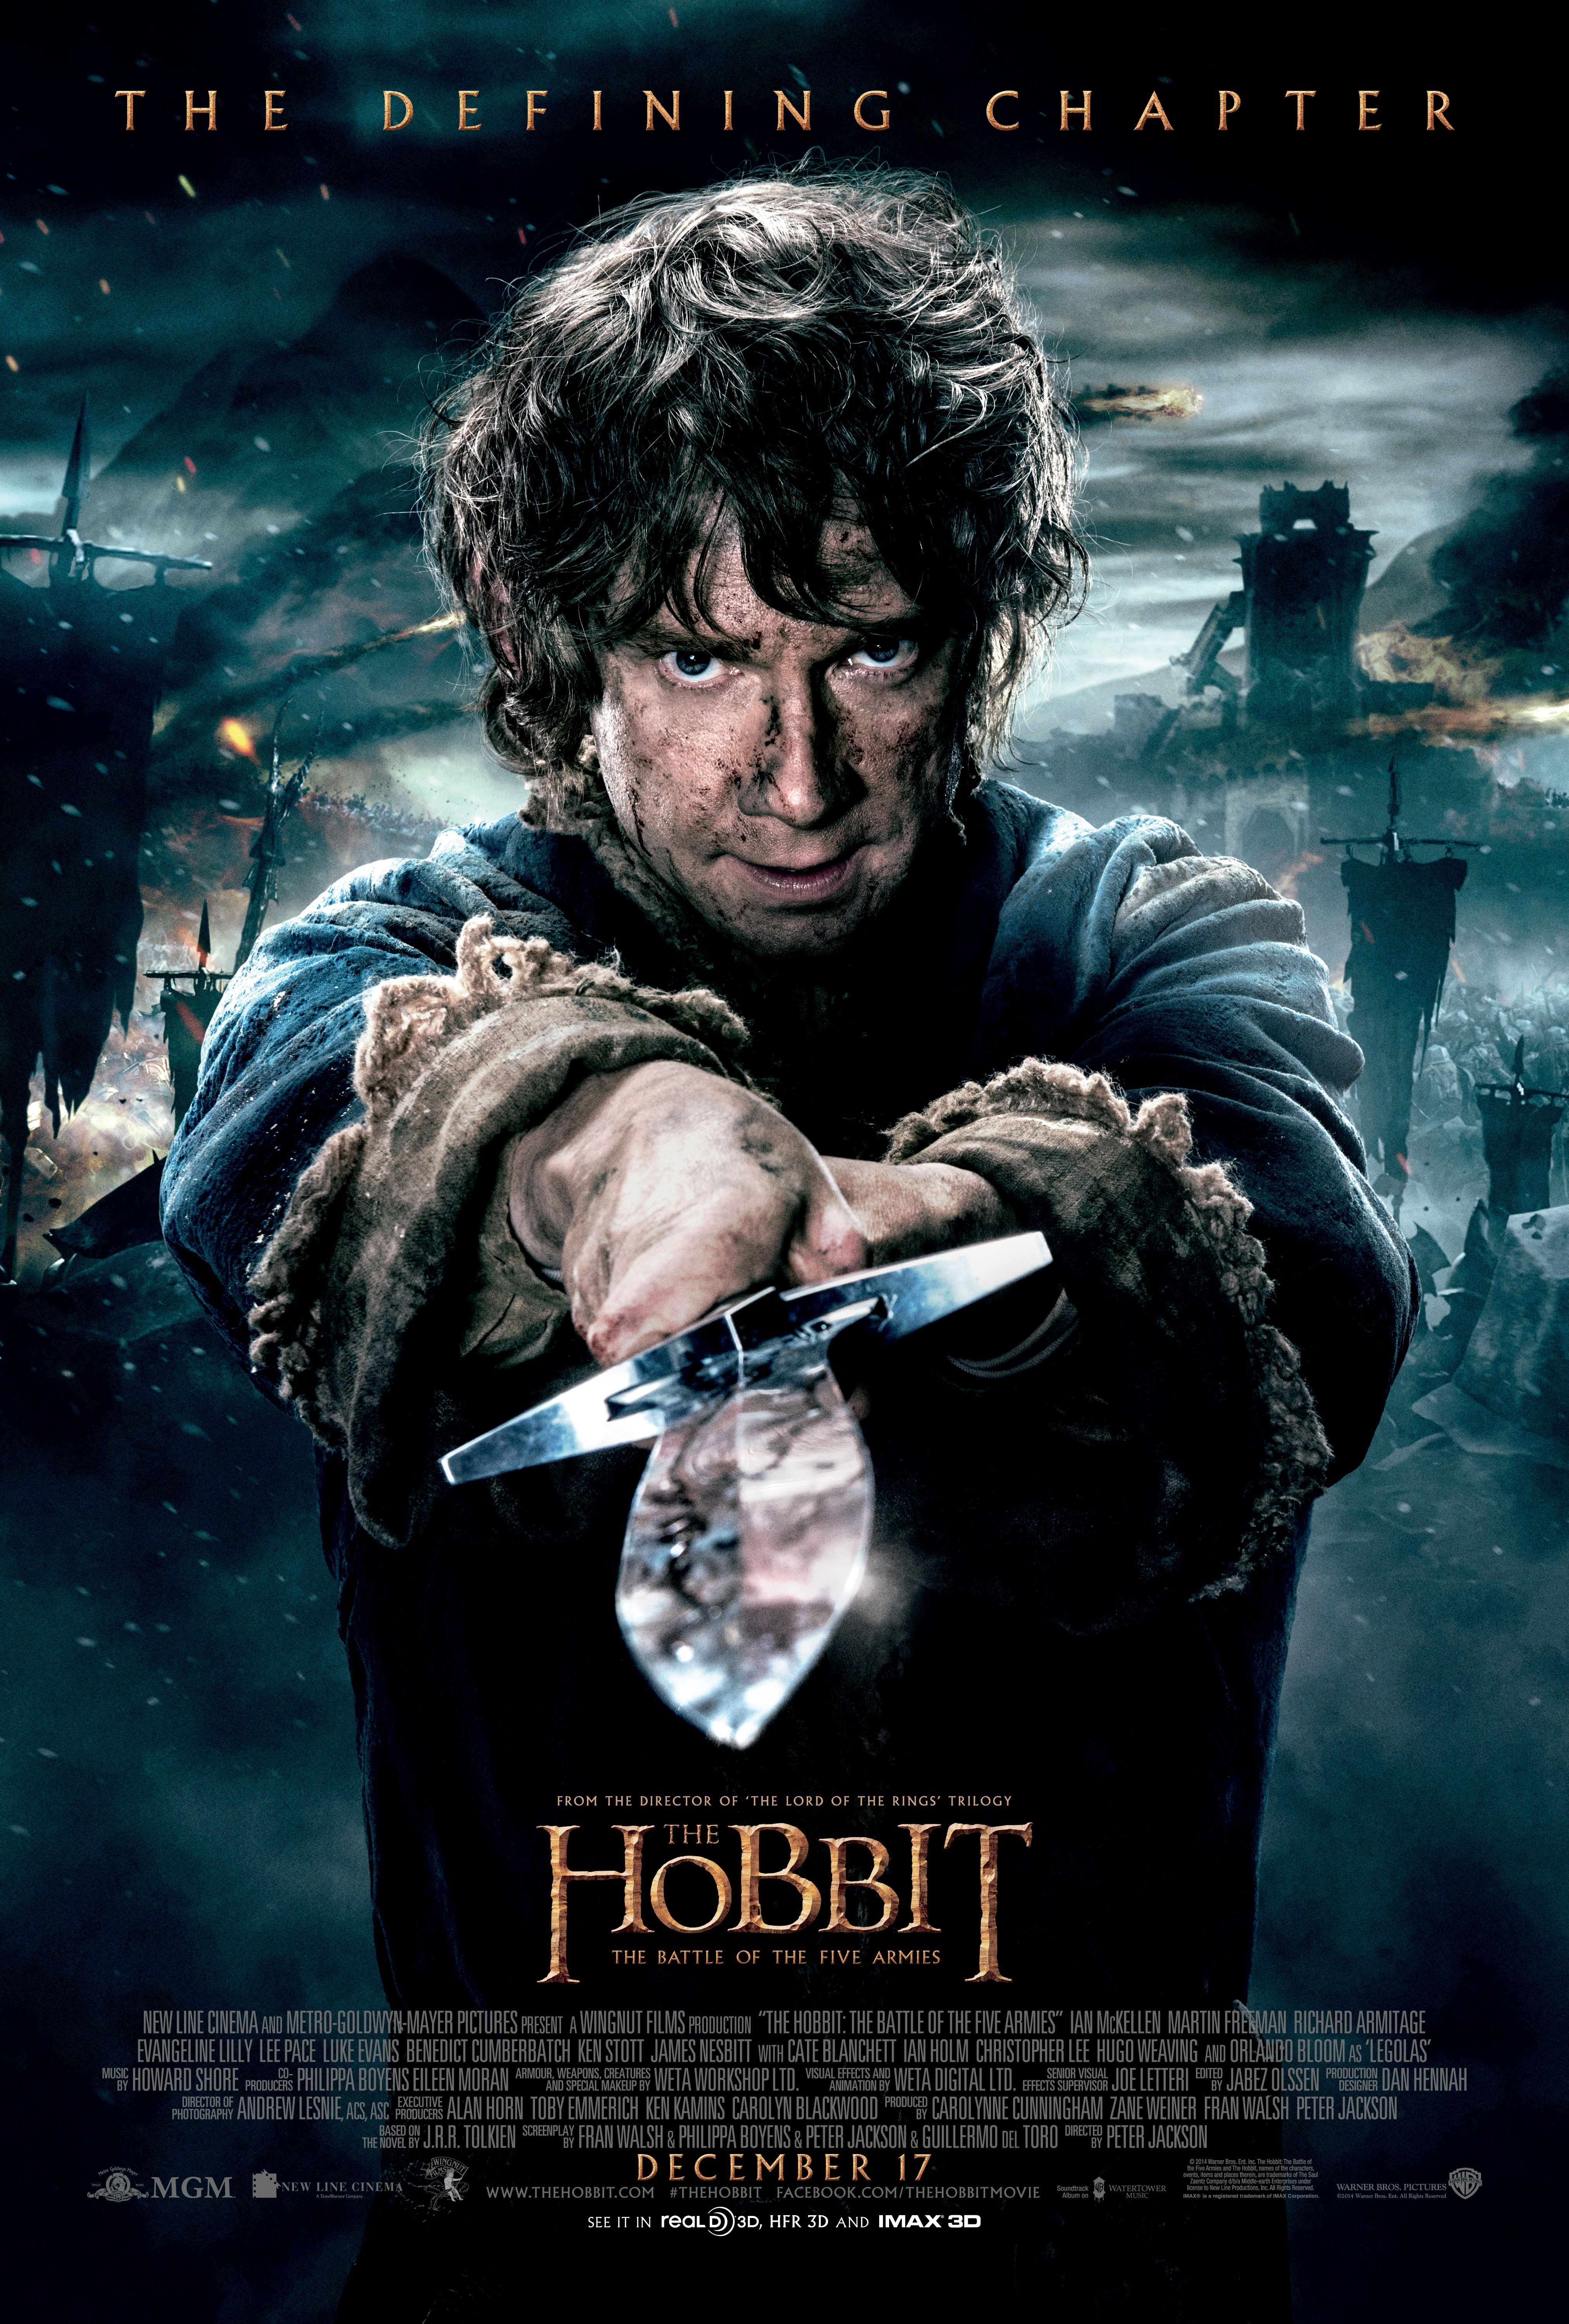 The Hobbit: The Battle of the Five Armies Extended Edition will arrive at select Regal Cinemas on October 13, 2015. Get your advanced tickets and showtimes: http://regmovi.es/1LhWDLV